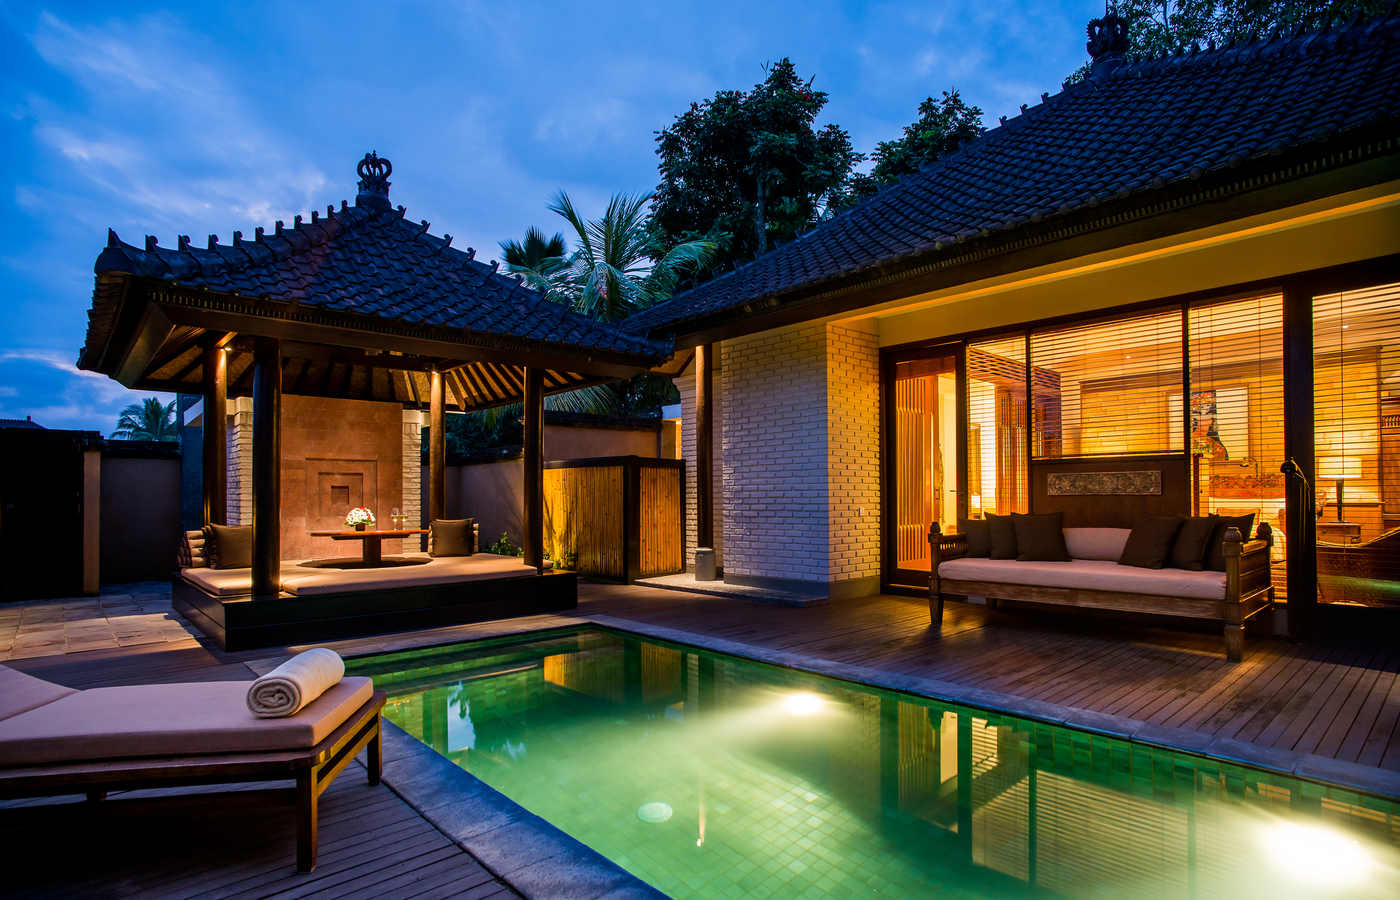 CTG-Rooms-1Bedroom Pool Villa-Private Pool 01.jpg